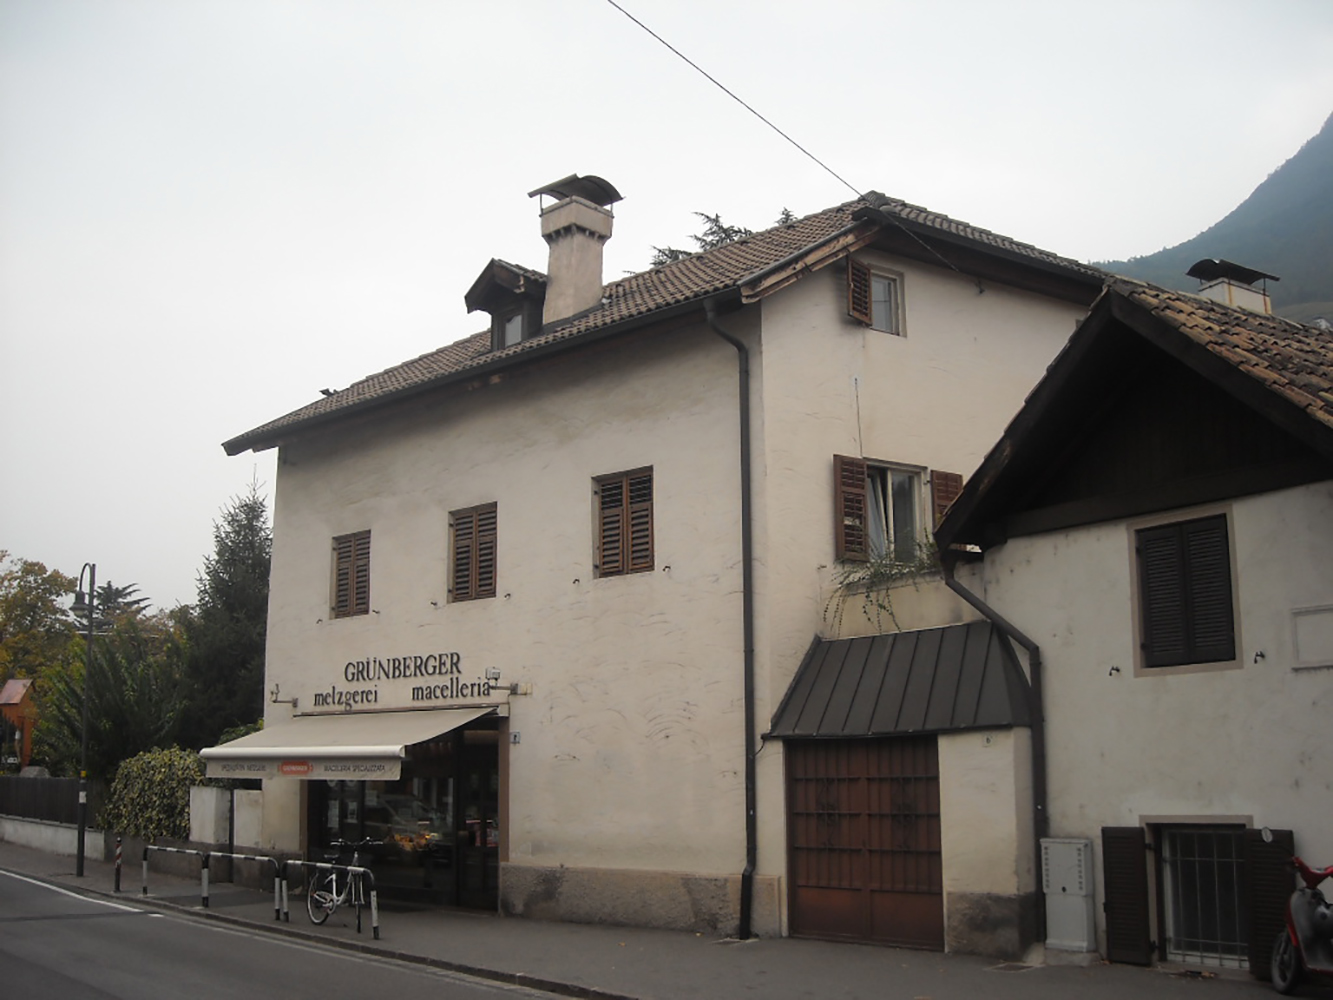 house before the reconstruction